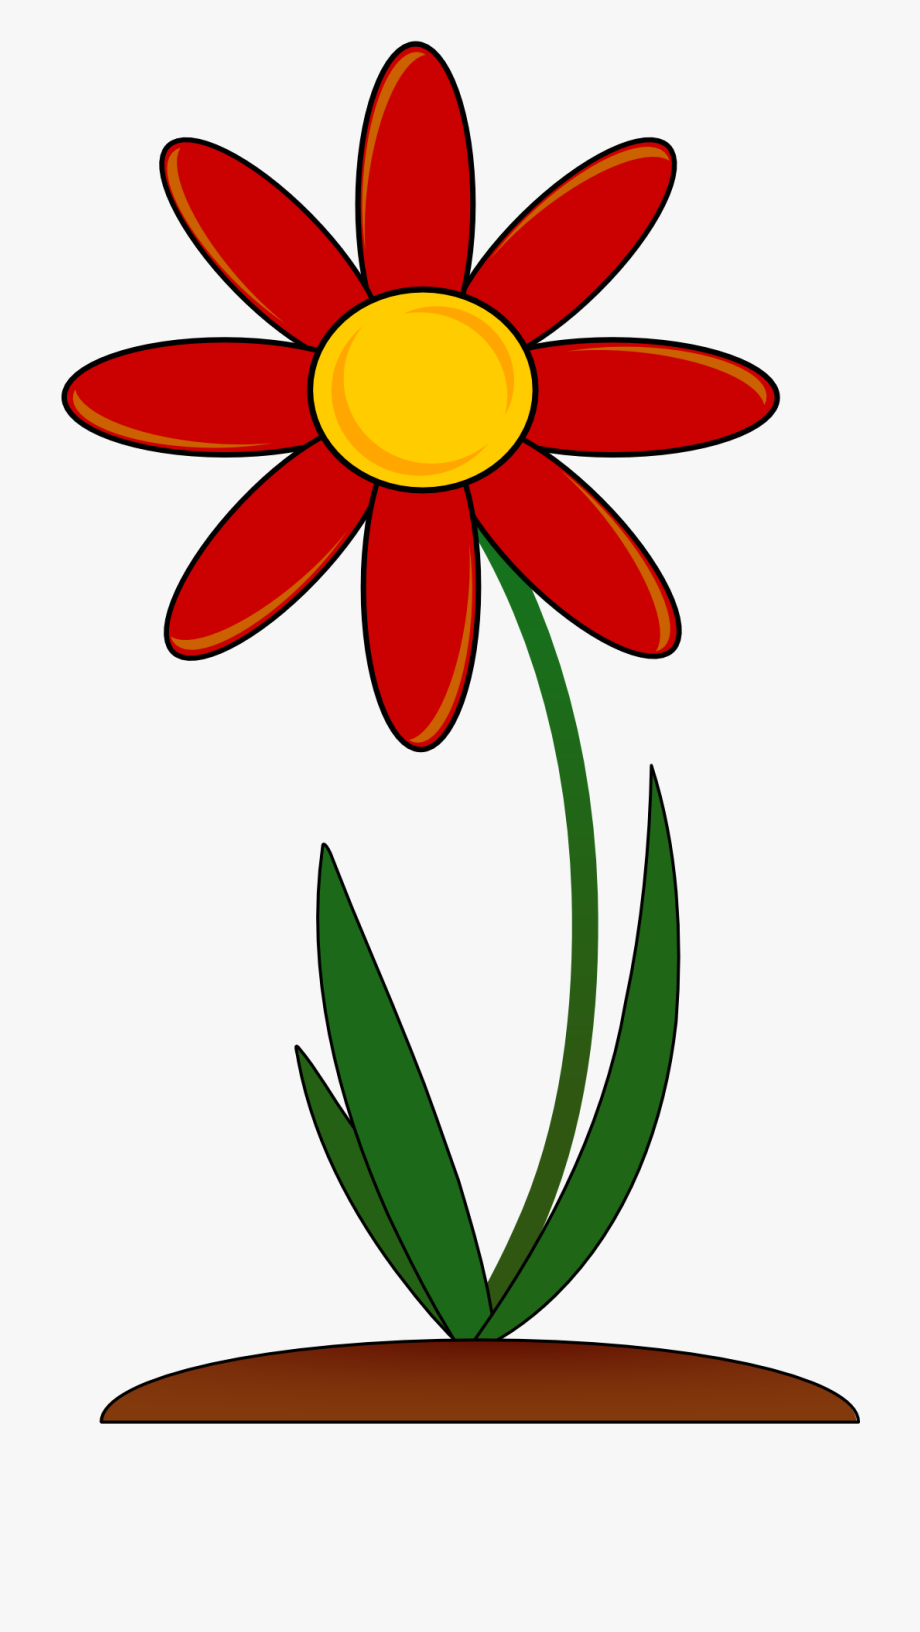 Flower Clipart Png , Transparent Cartoon, Free Cliparts.